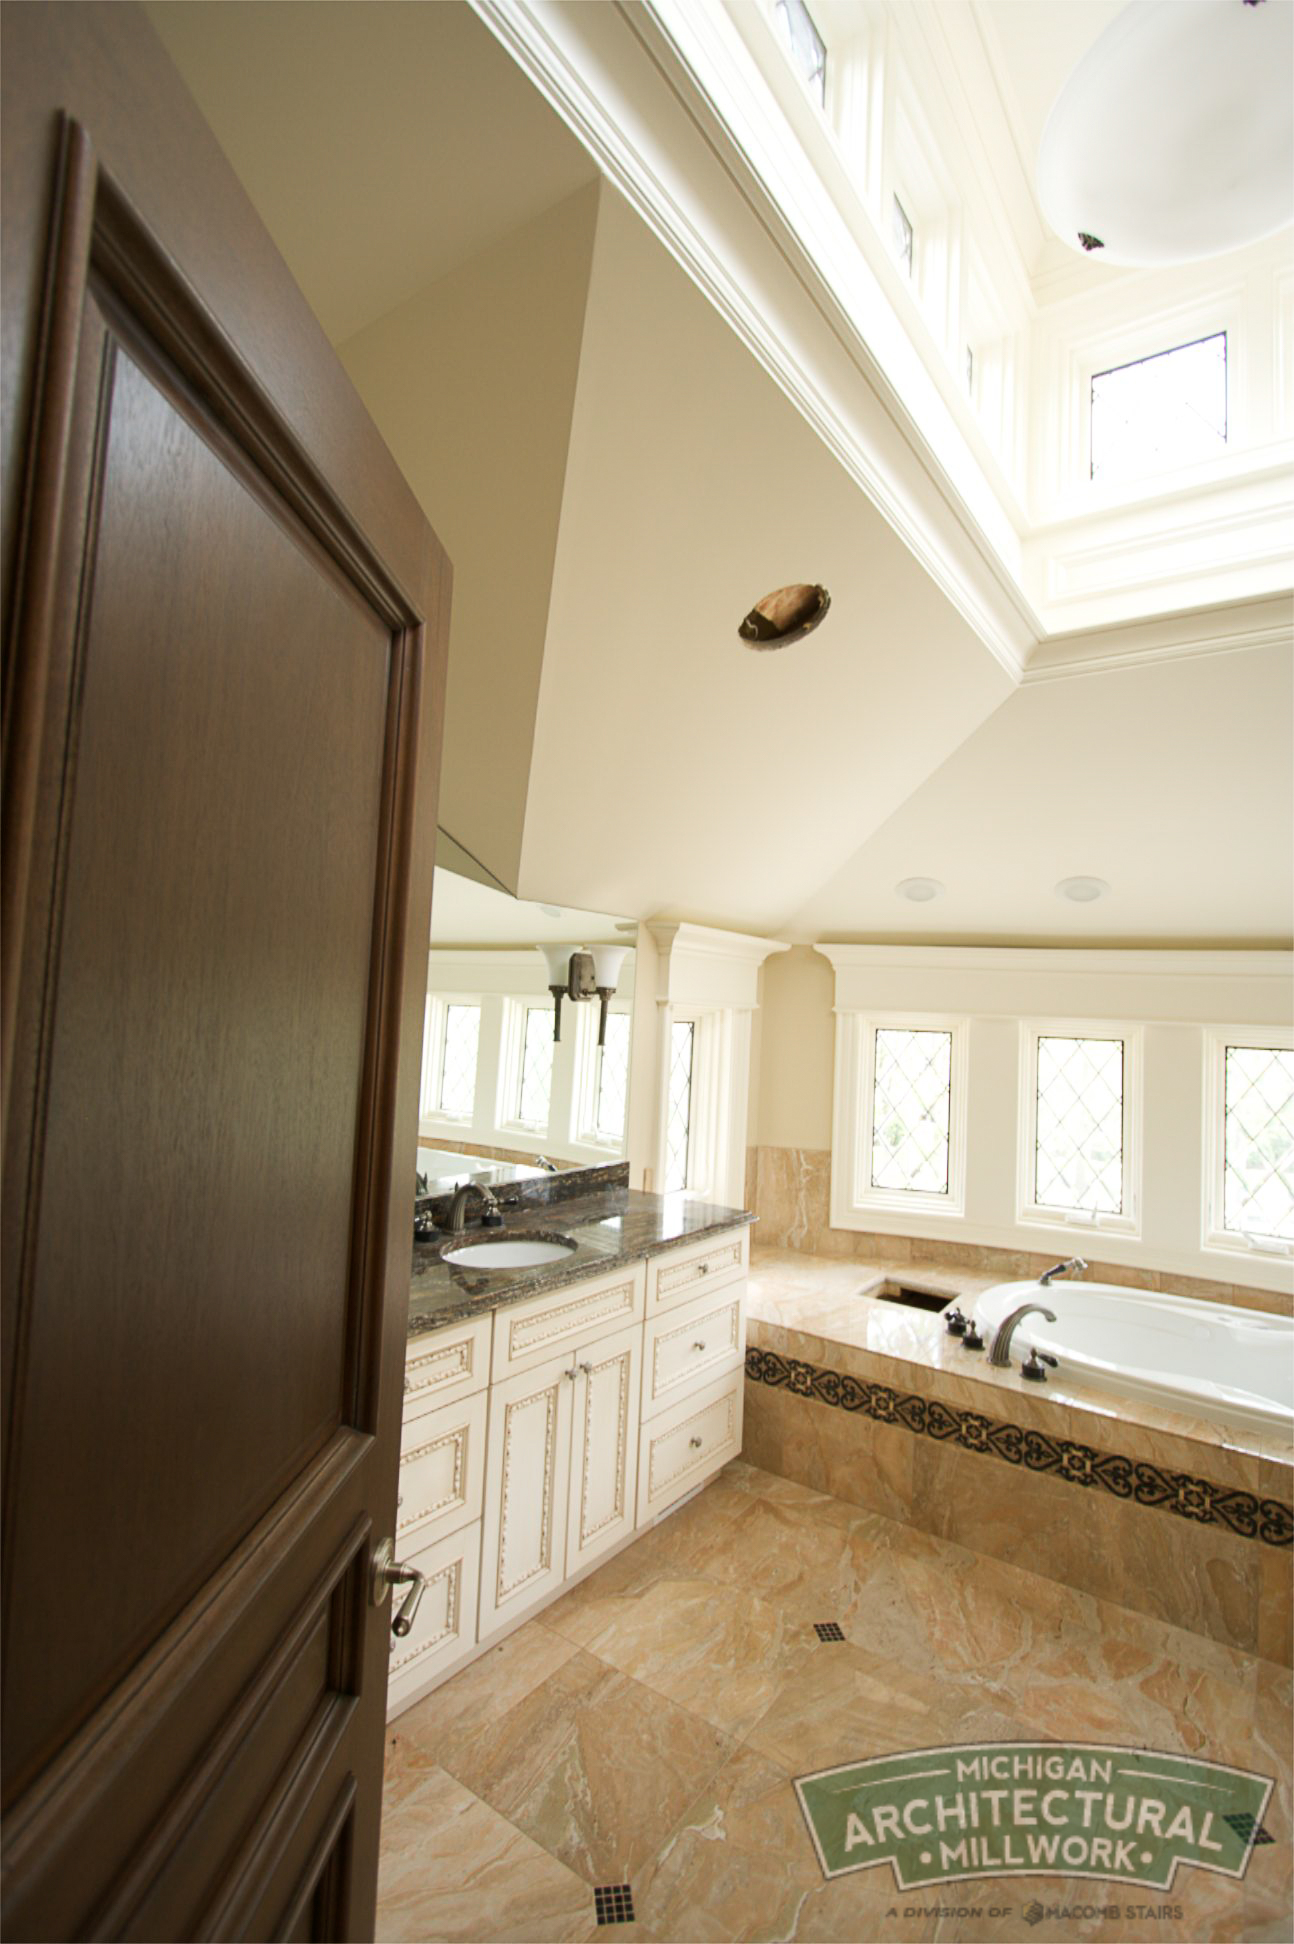 Michigan Architectural Millwork- Moulding and Millwork Photo-100.jpg